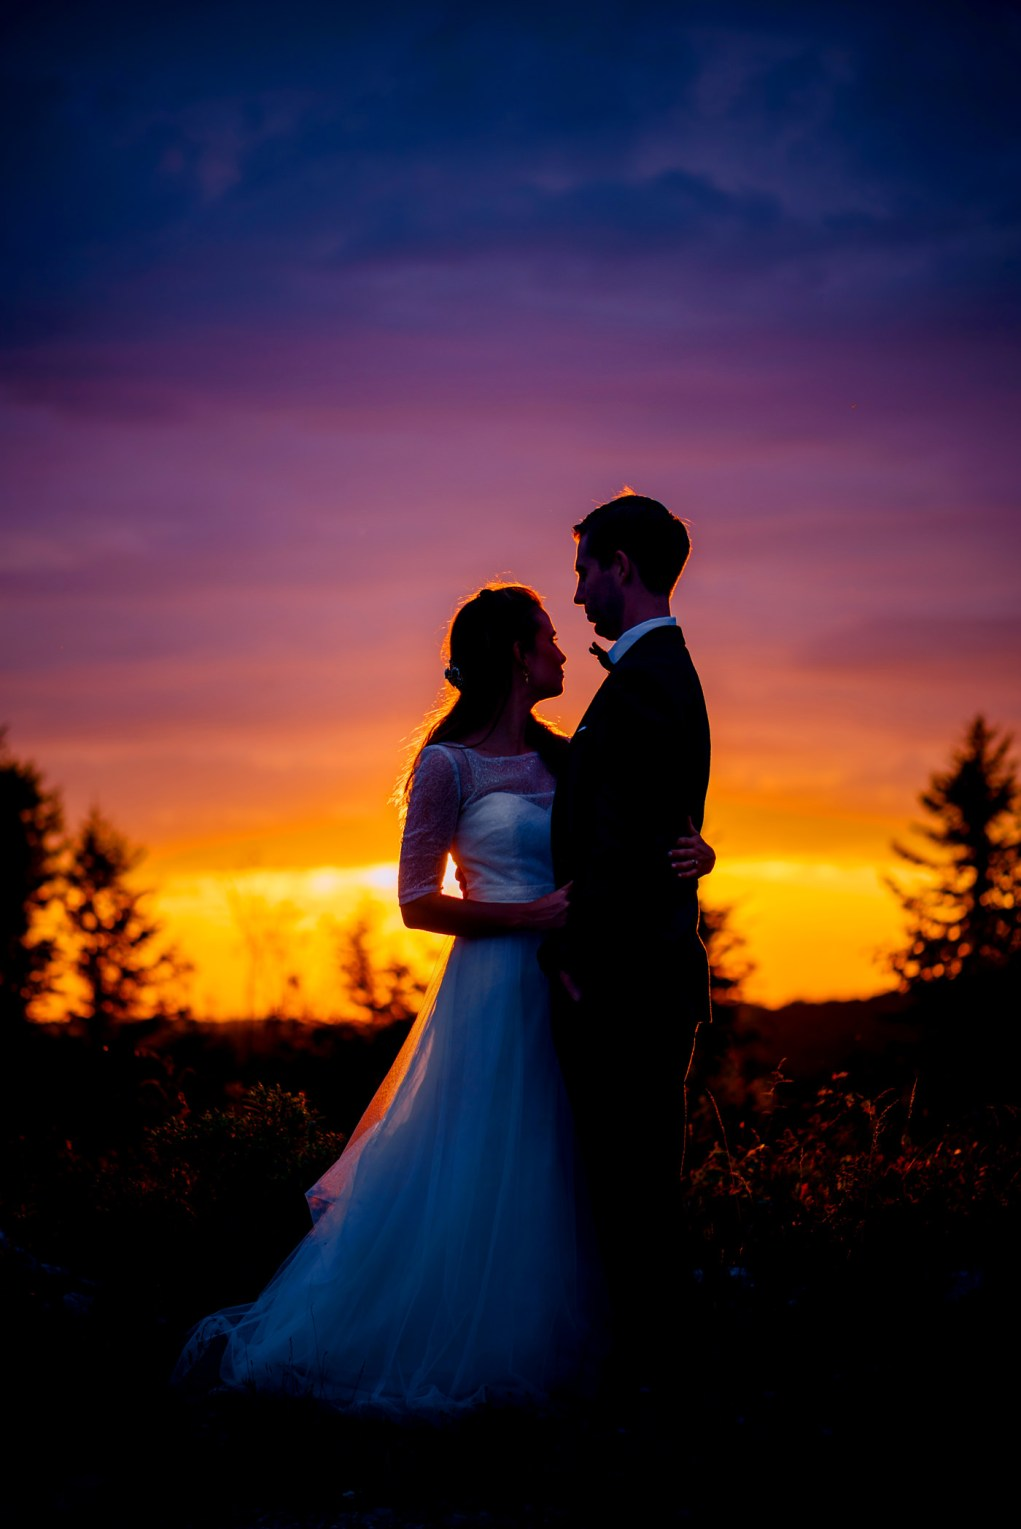 wv wedding silhouette at sunset dolly sods